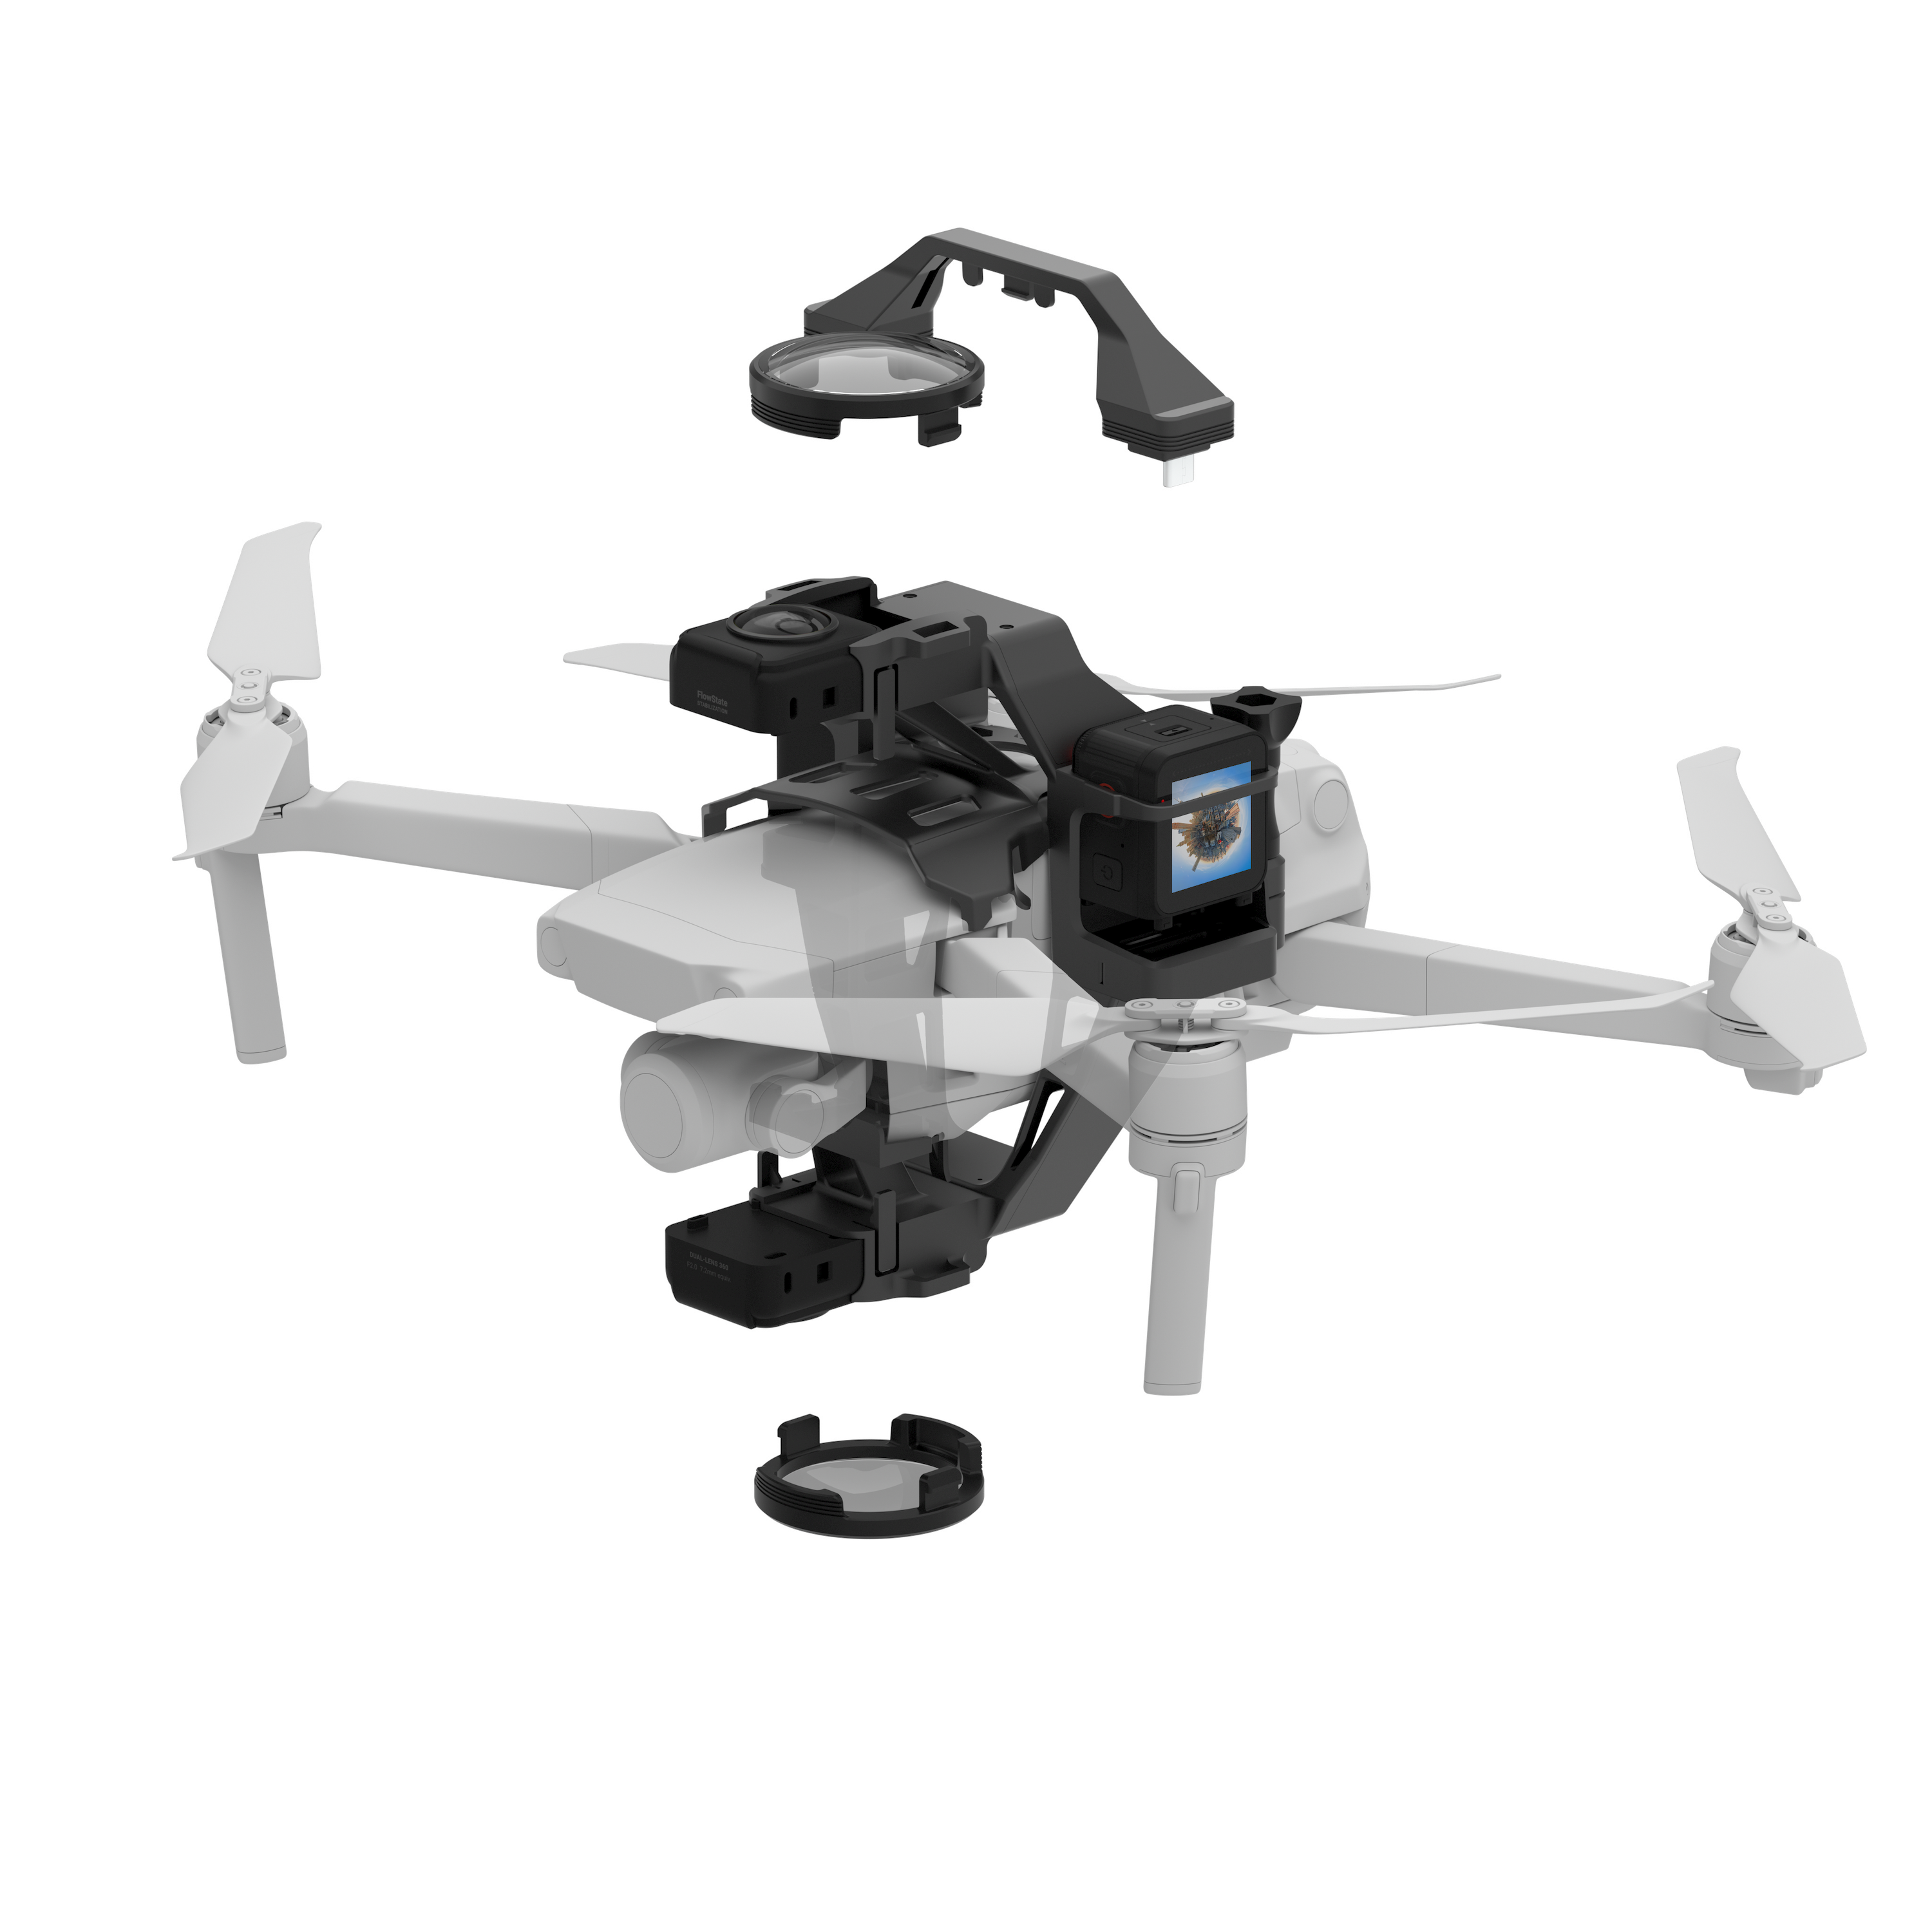 drone1b.png